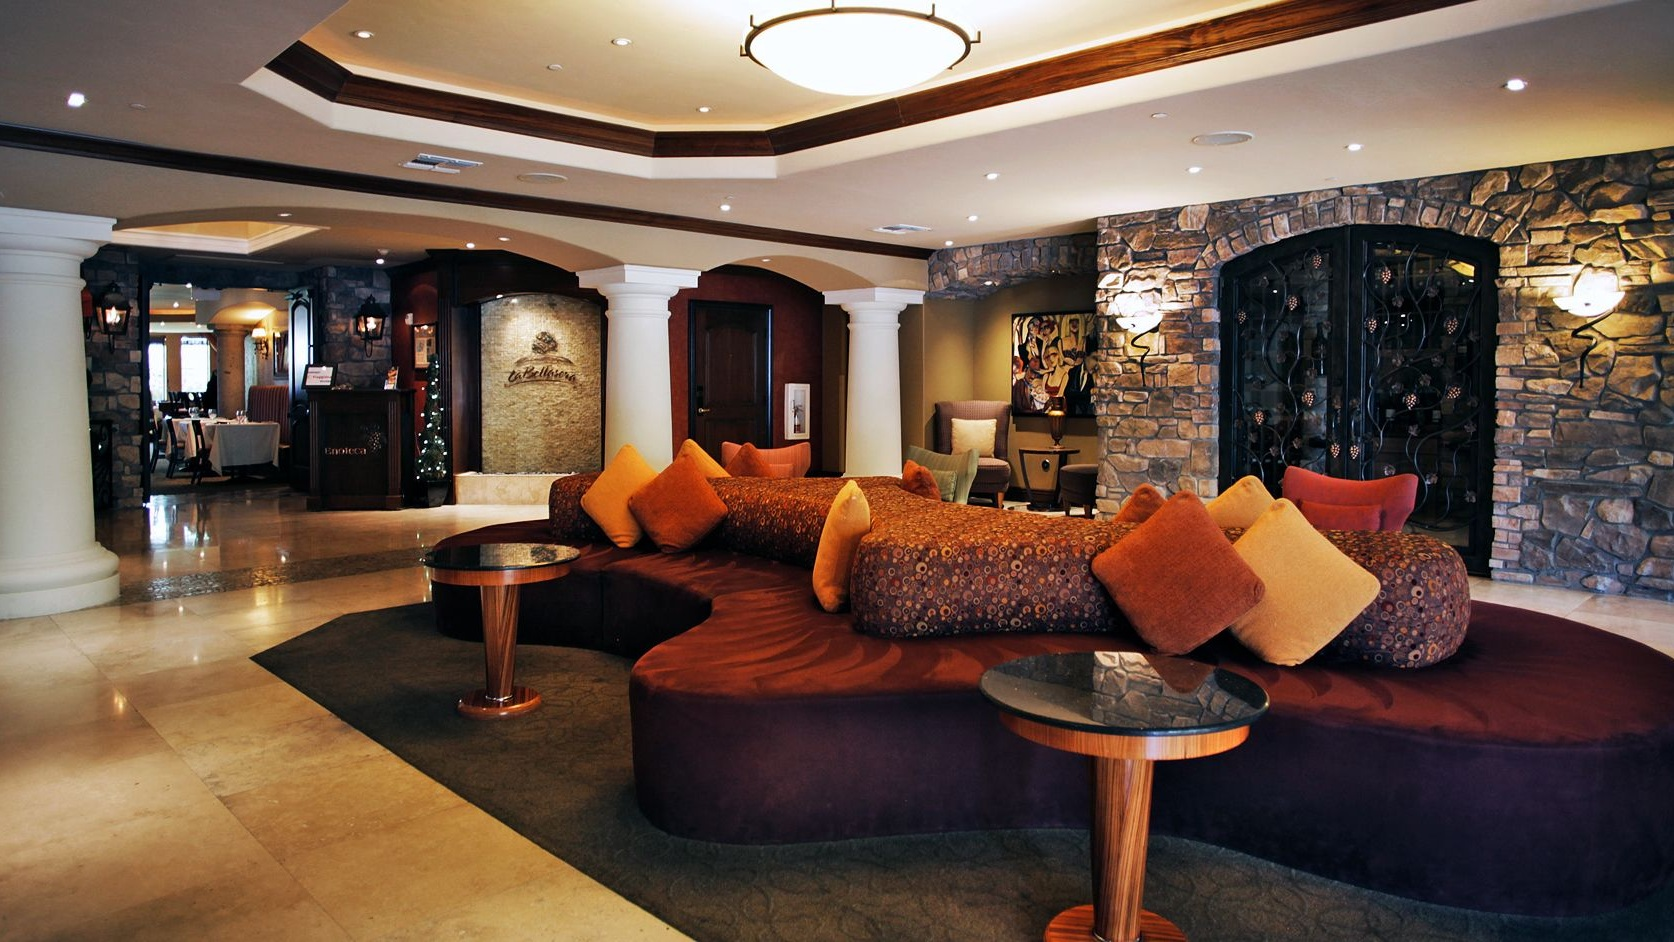 Lounge of La Bellasera Hotel & Suites, Paso Robles